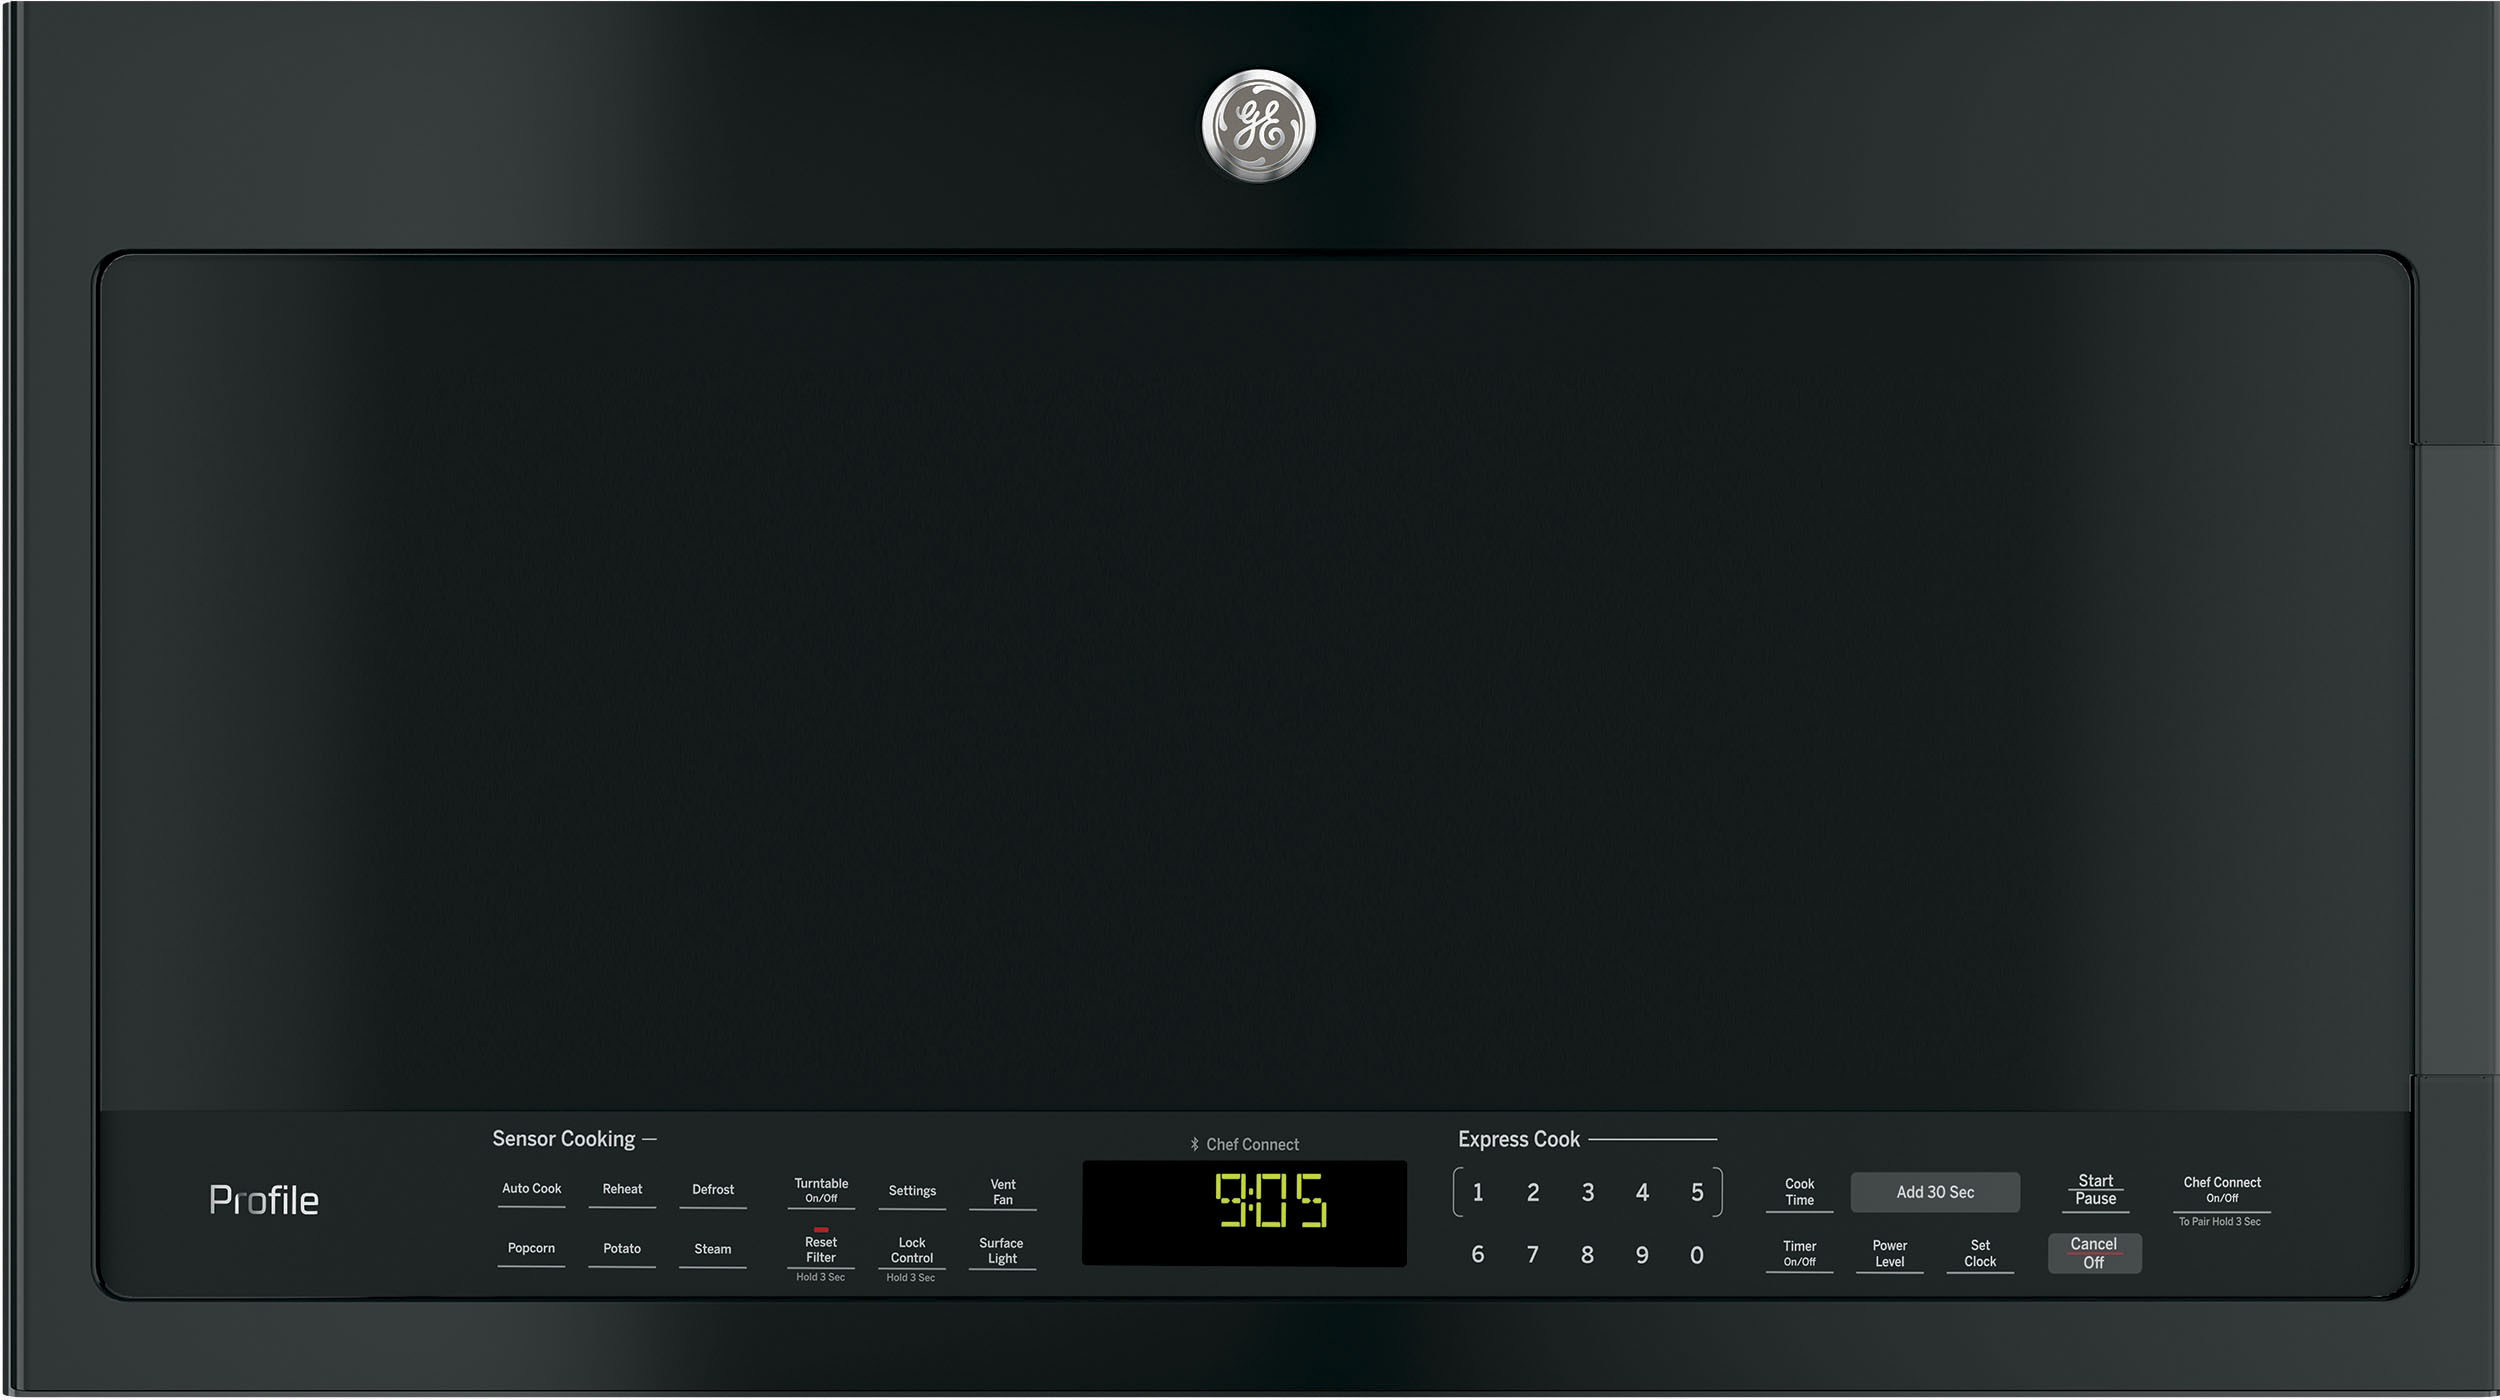 Ge Pvm9005djbb 2 1 Cu Ft Over The Range Microwave Oven